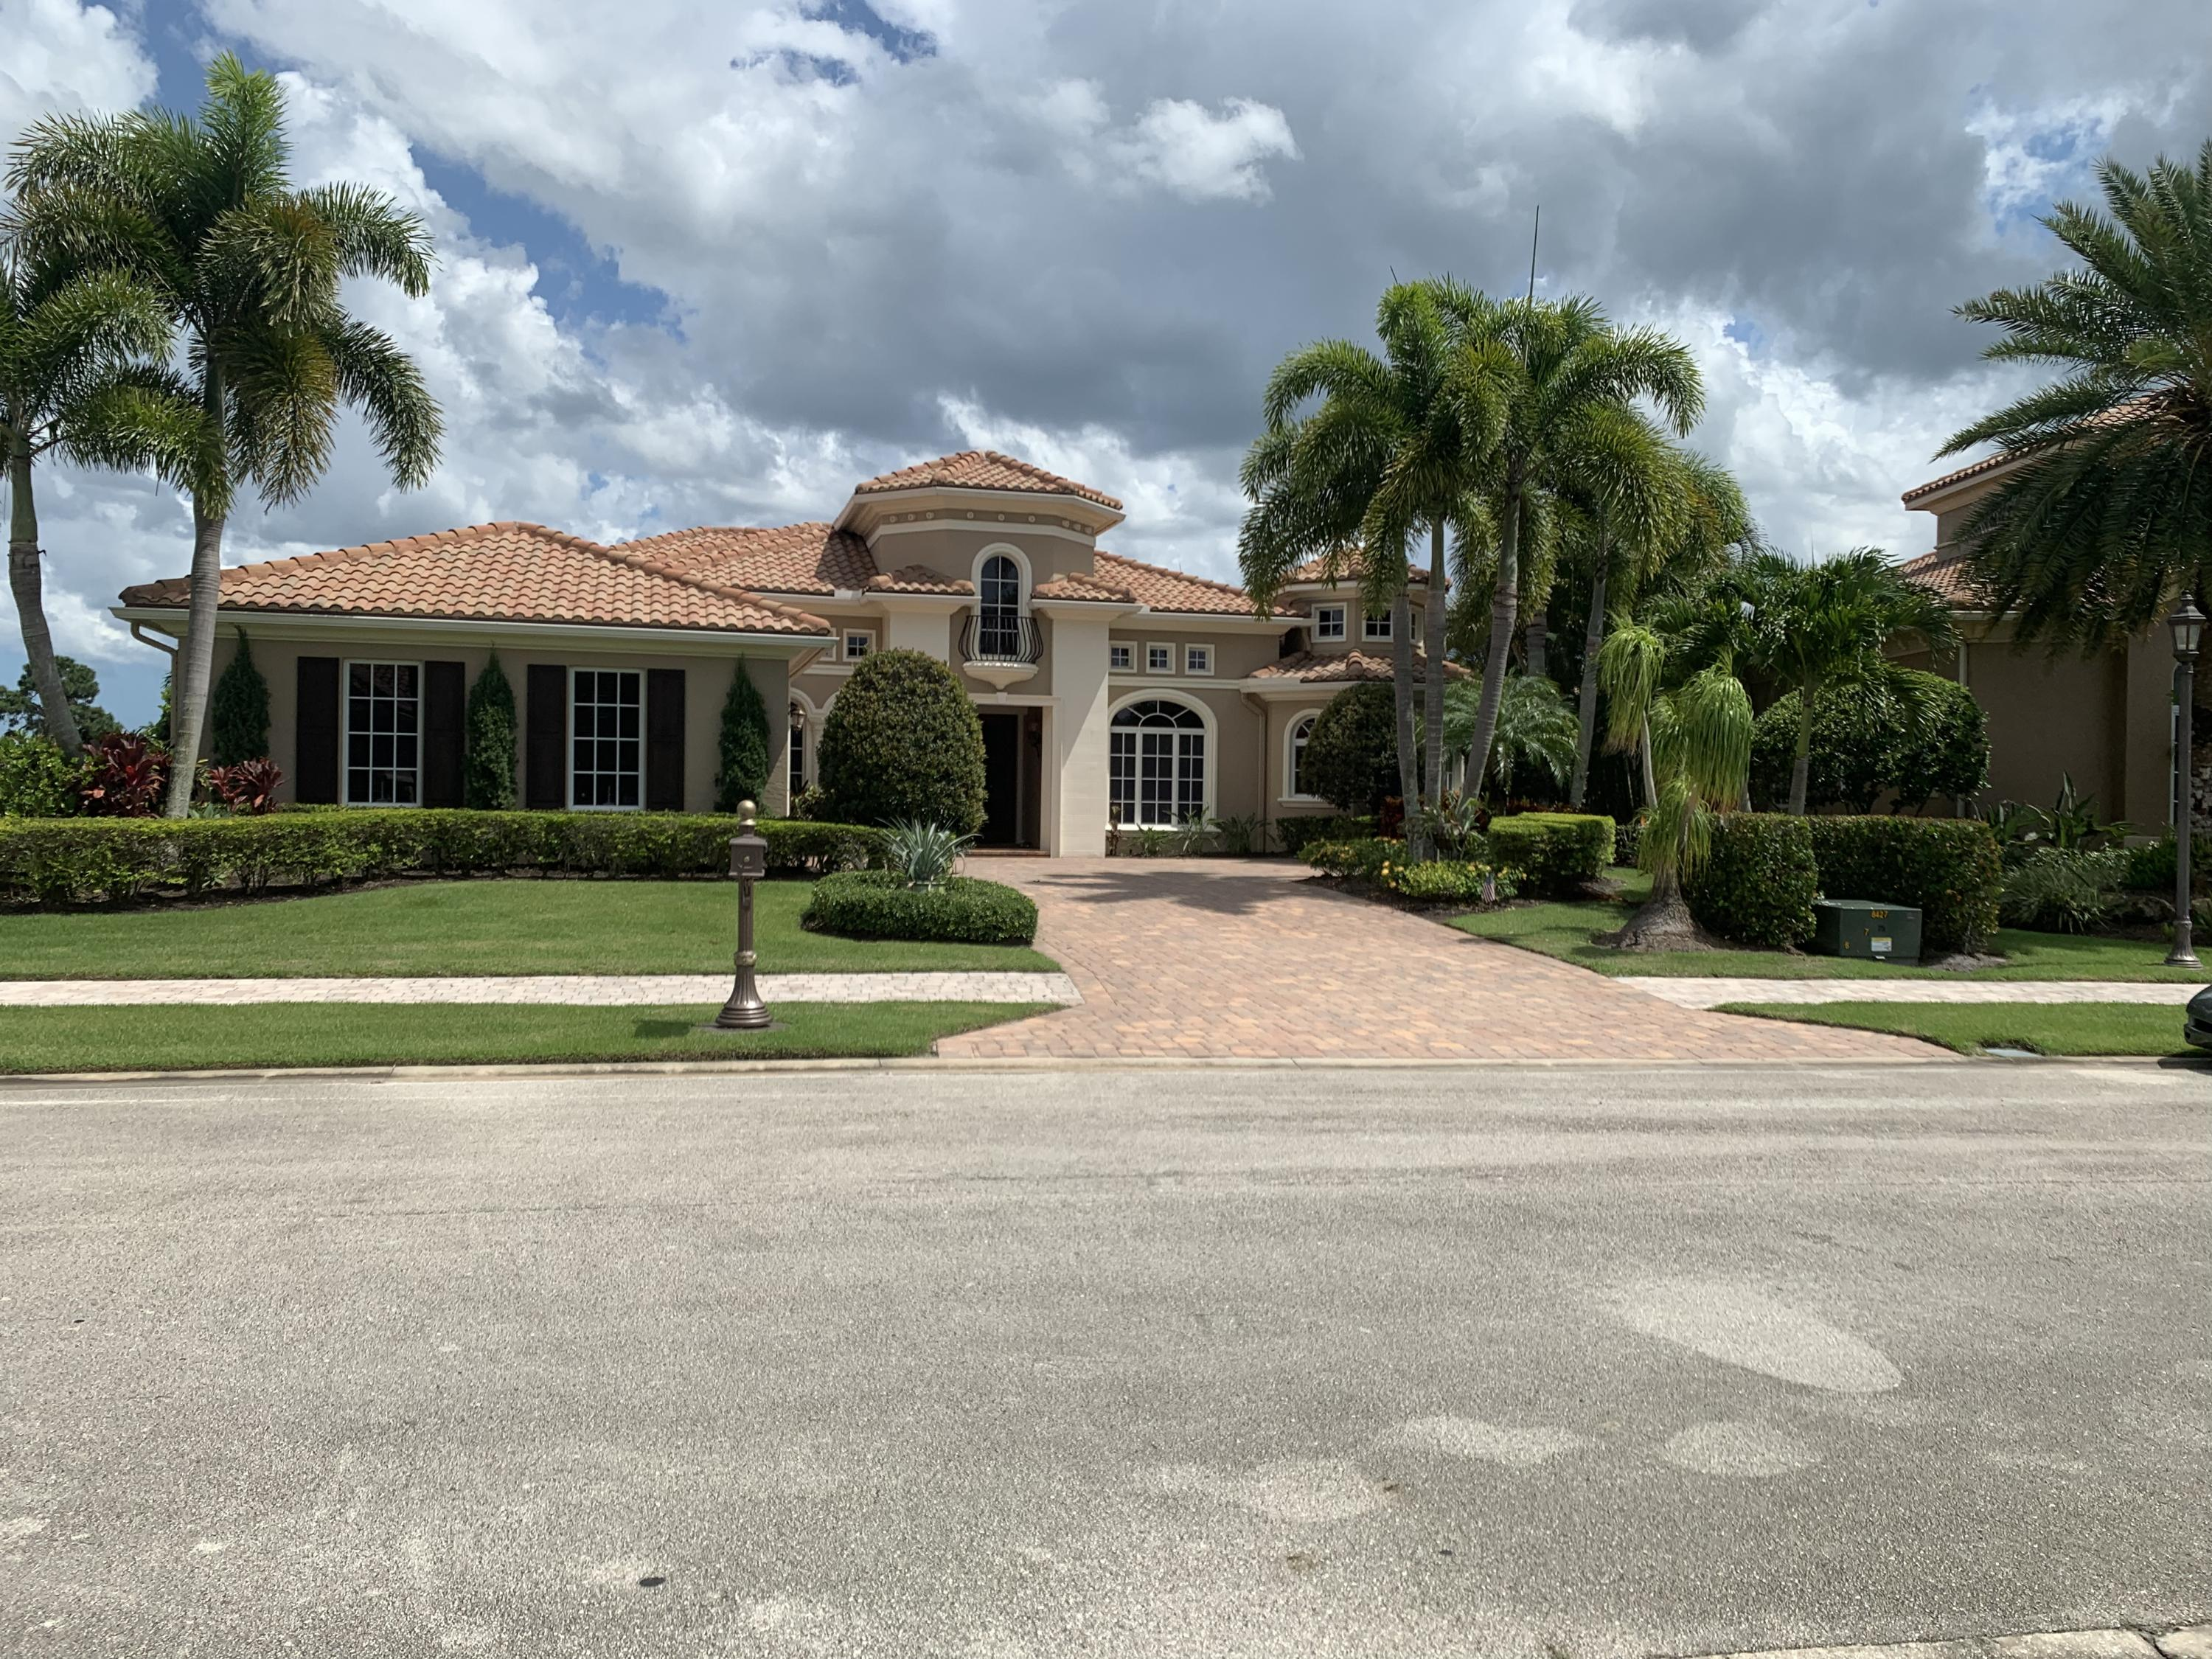 108 SE San Fratello - Port St Lucie, Florida